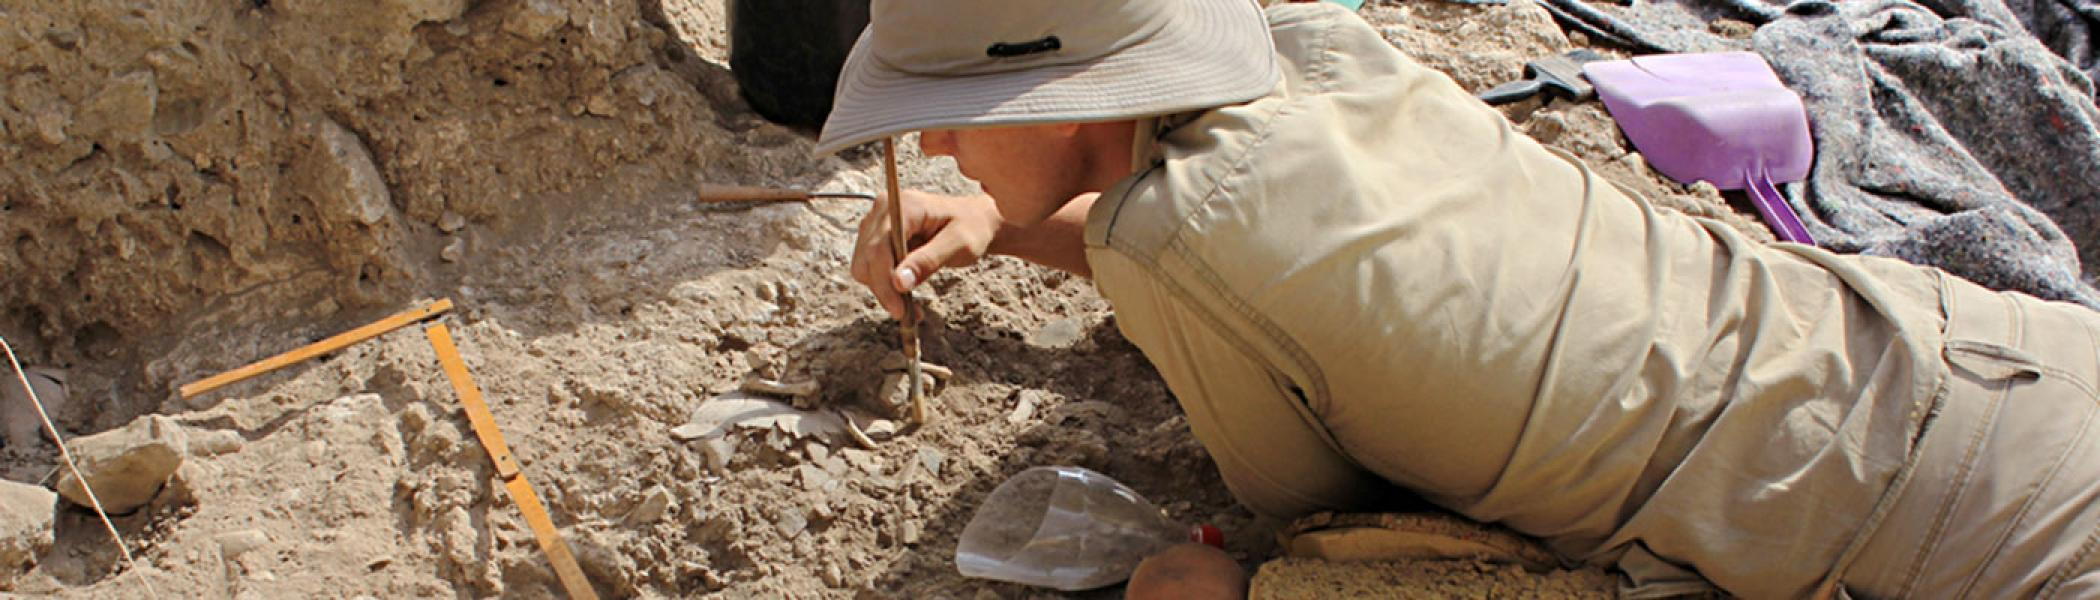 Archaeologist excavating at Nahal Ein Gev II, Jordan